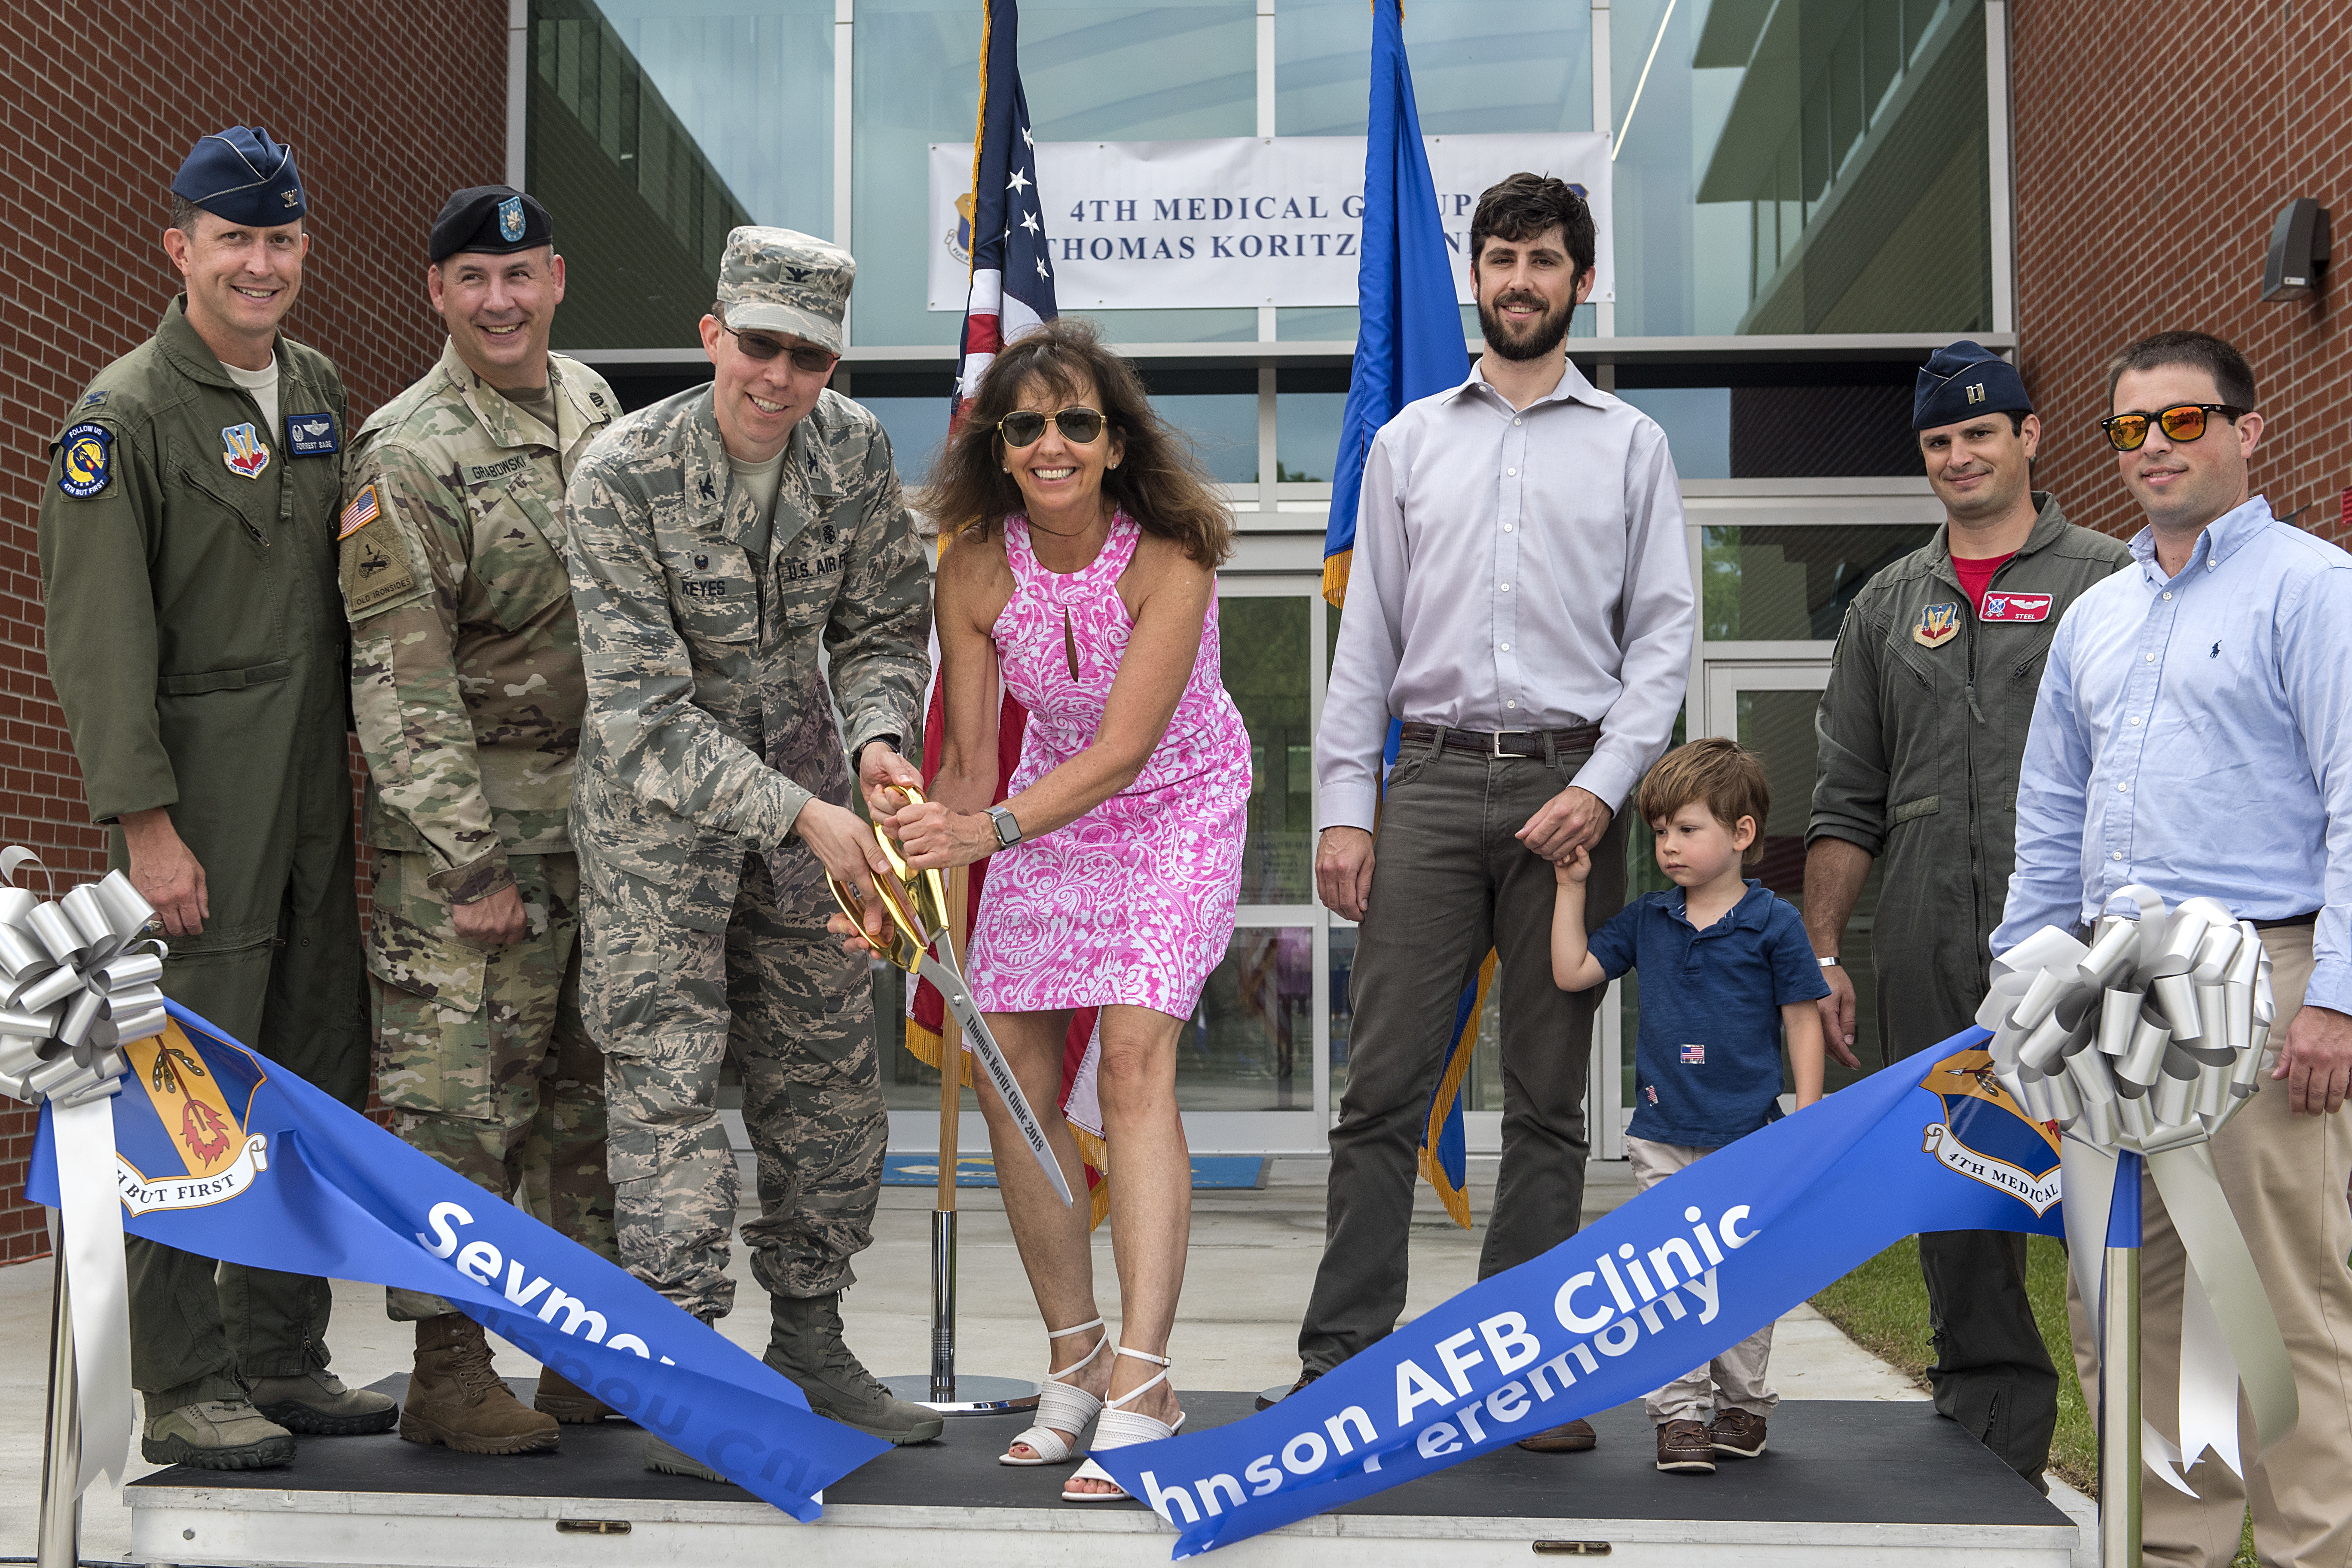 Sj Leaders Open New Medical Facility